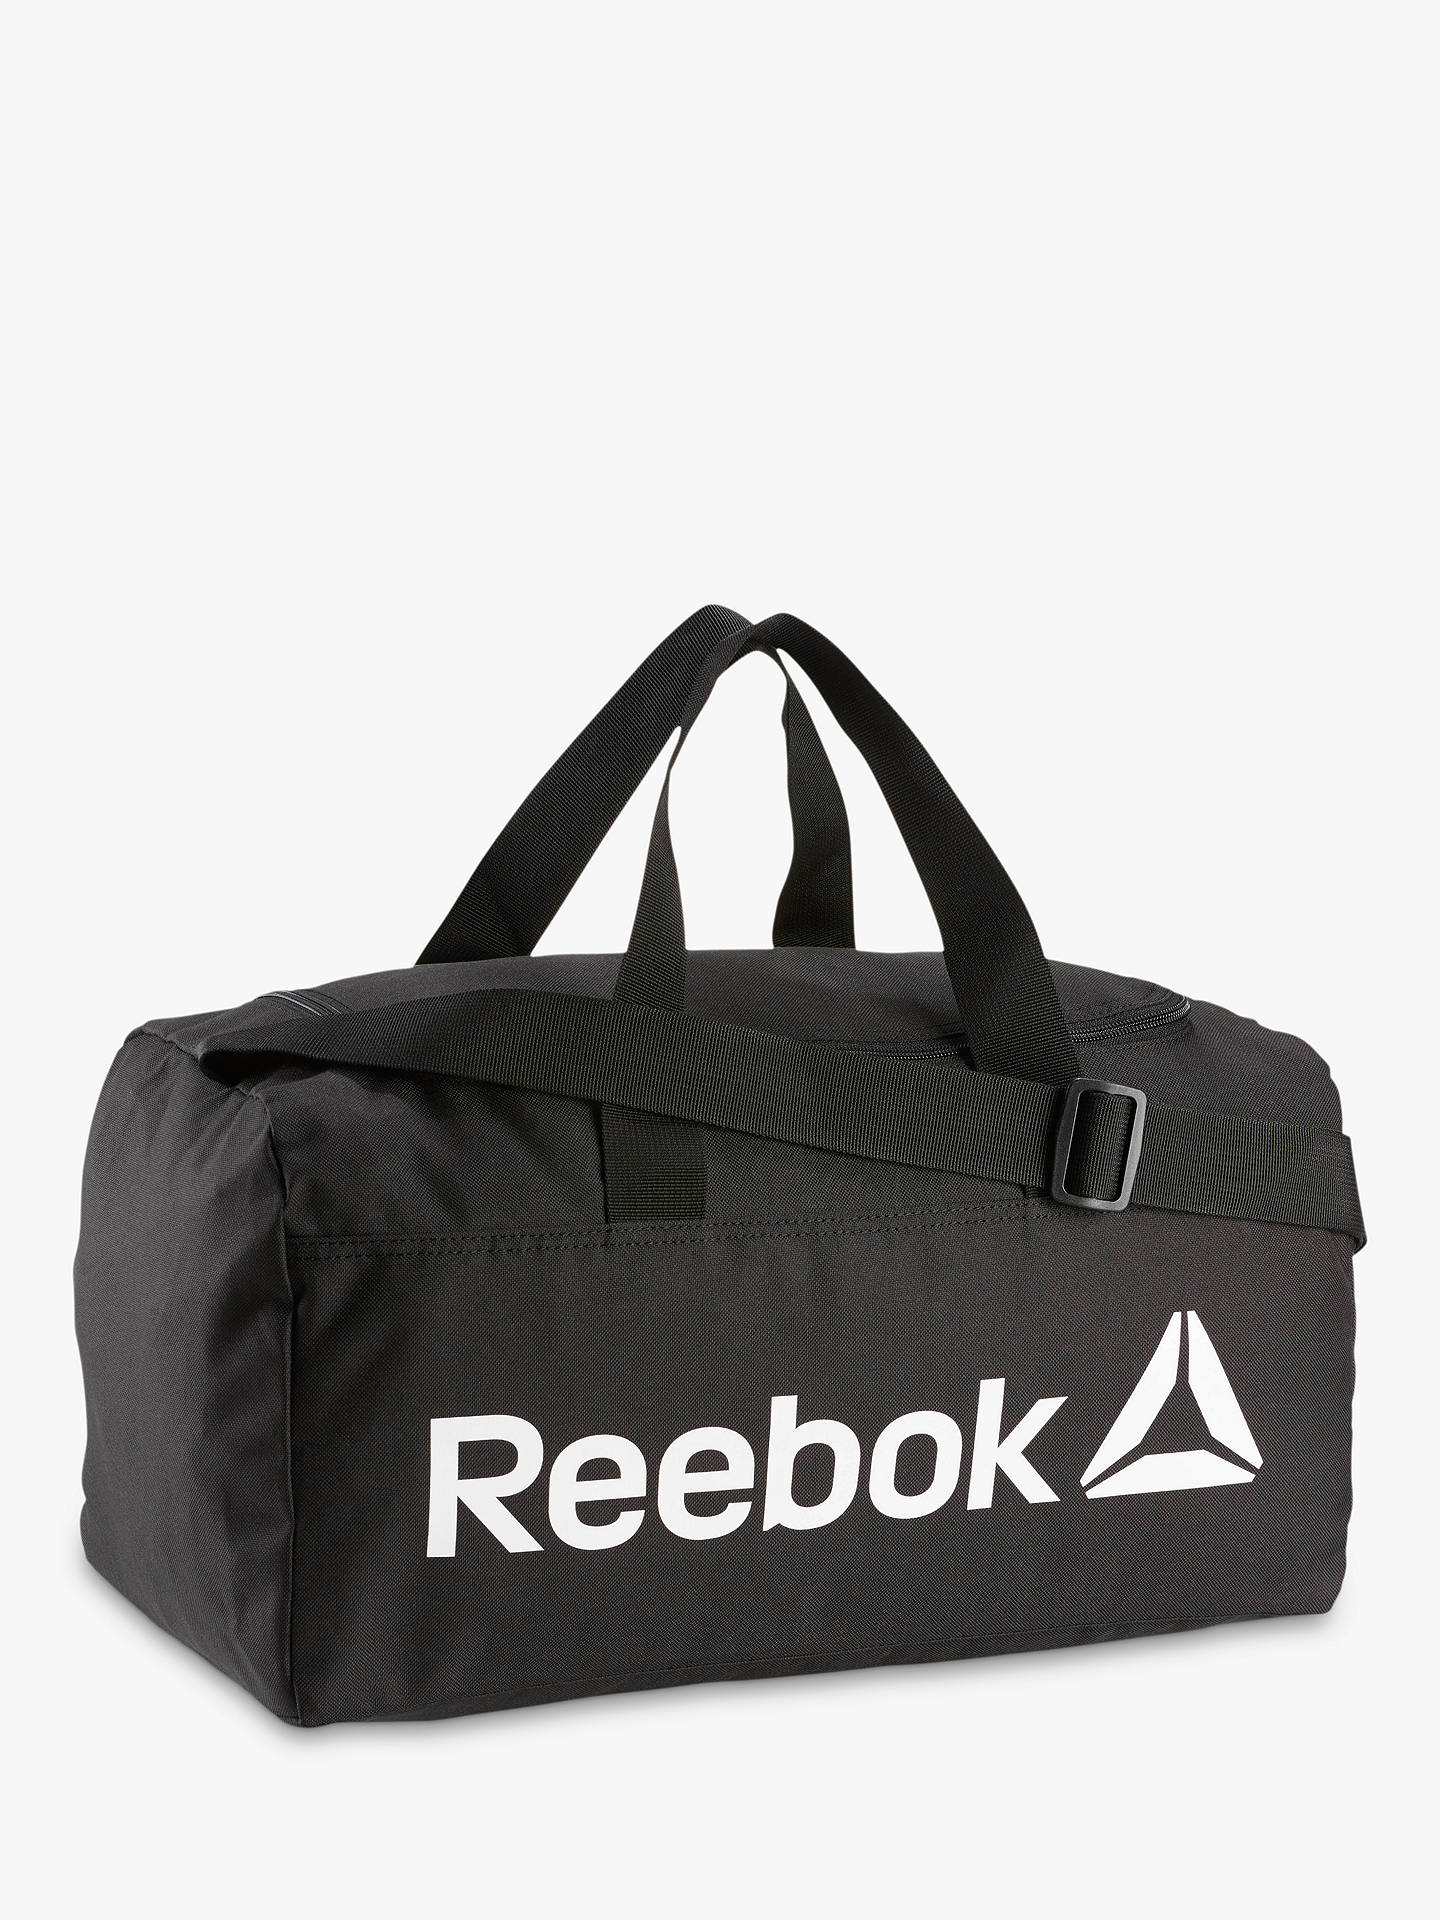 35945f0098 Buy Reebok Act Core S Grip Duffle Bag